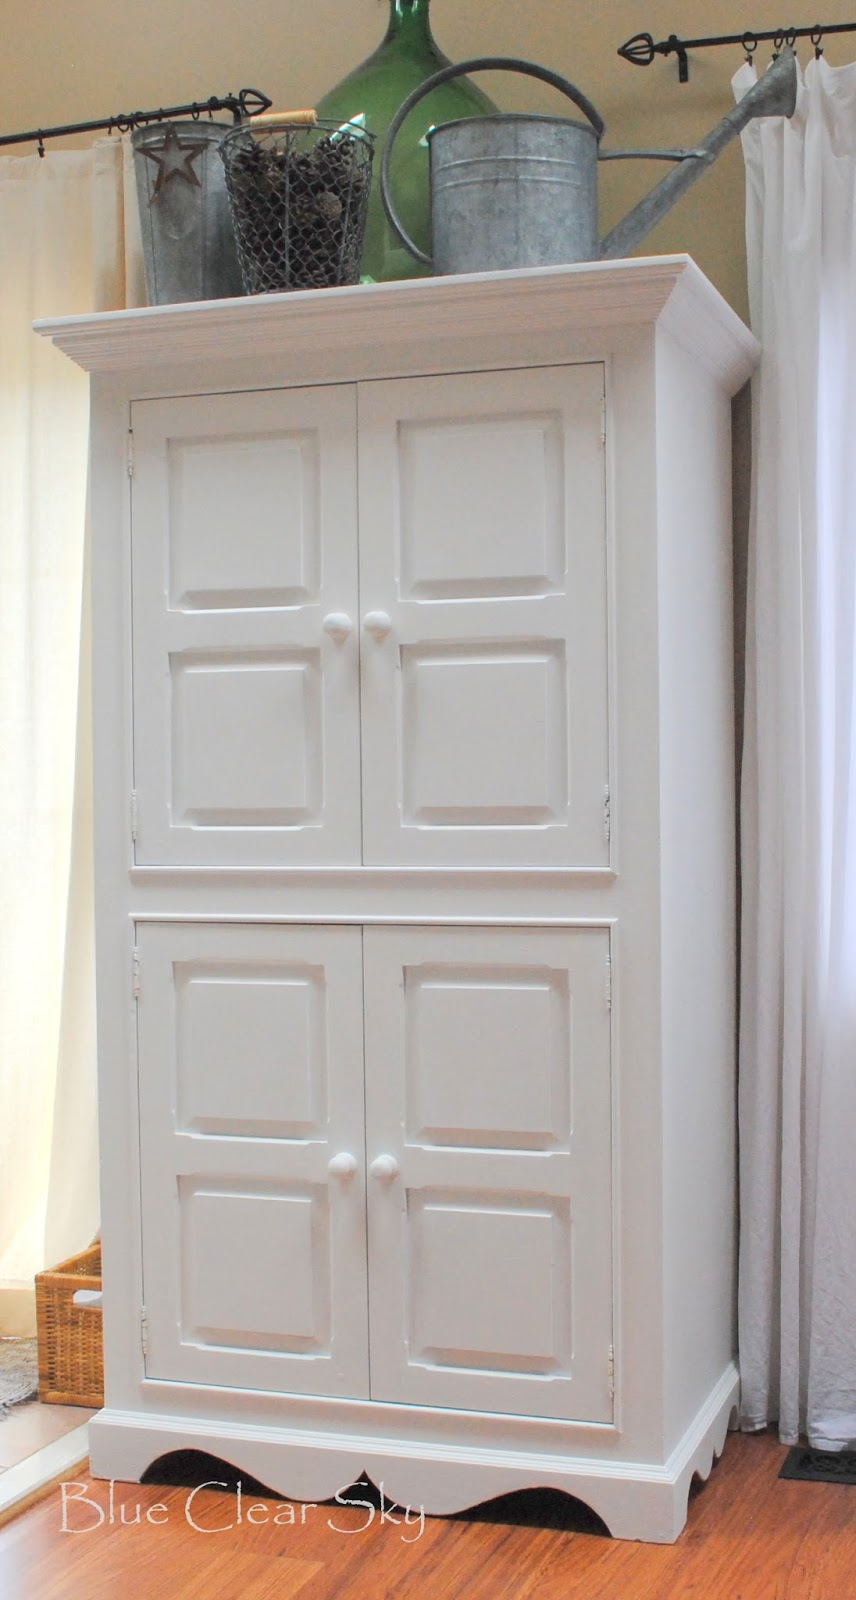 Rustic Maple: Painted Armoire in Mercury Glass White